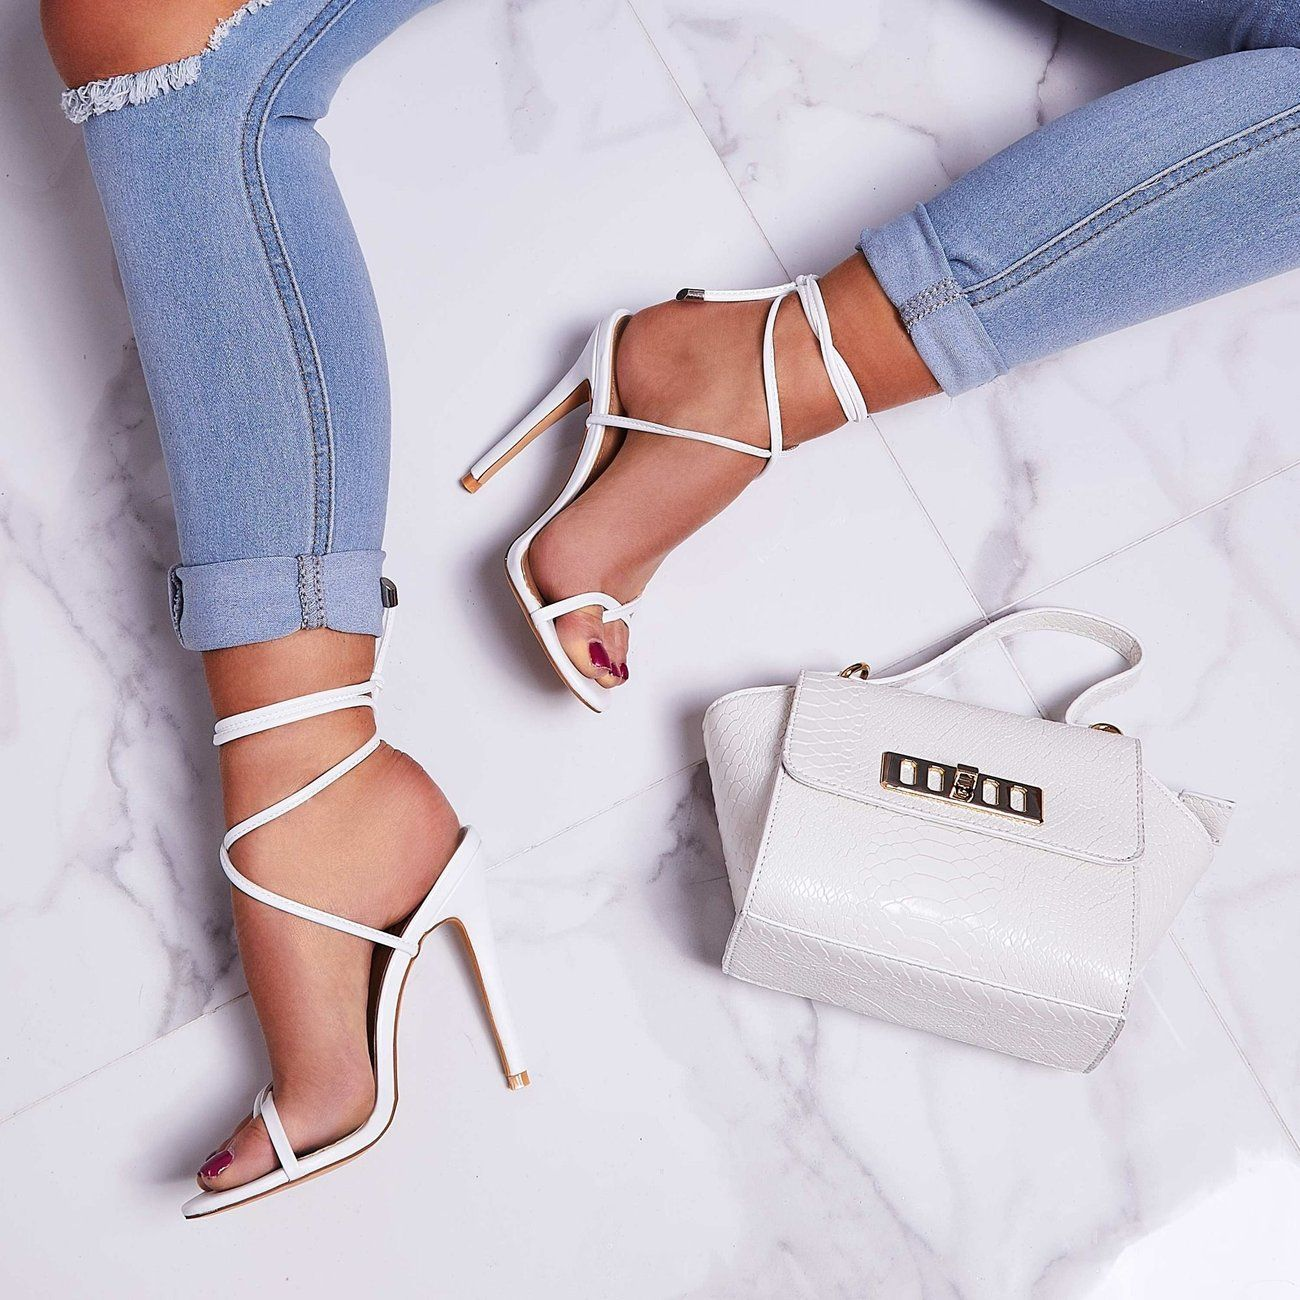 Rochelle Lace Up Barely There Heel In White Faux Leather Ego Heels Ego Shoes White Faux Leather